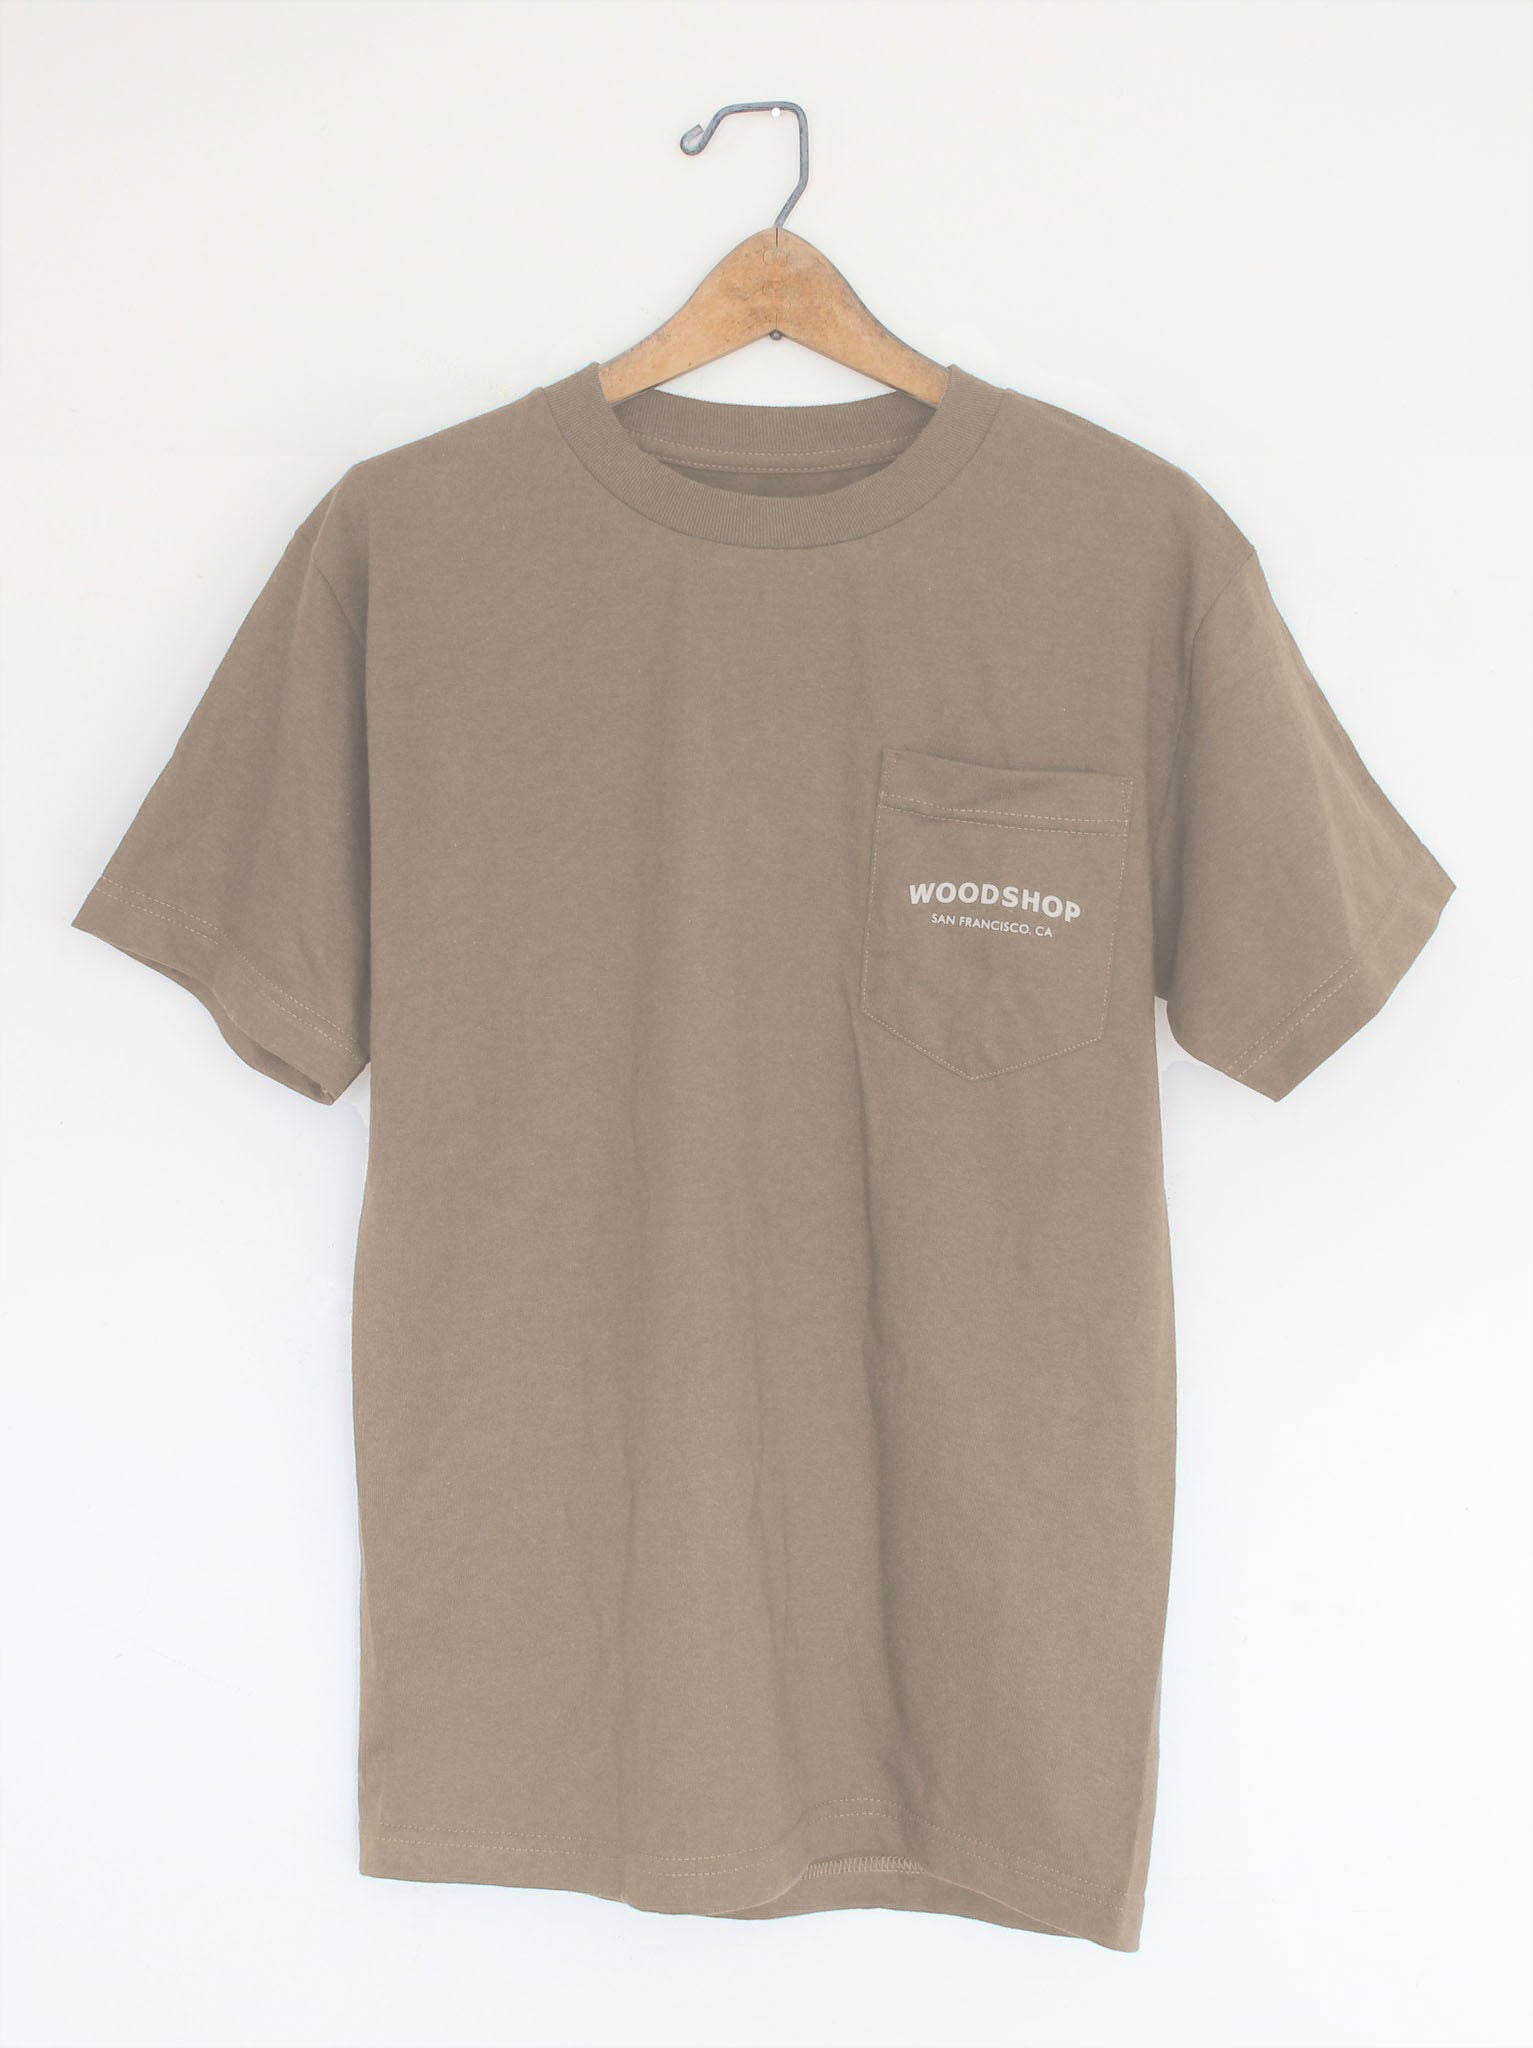 Woodshop Logo pocket t-shirt (Coffee)